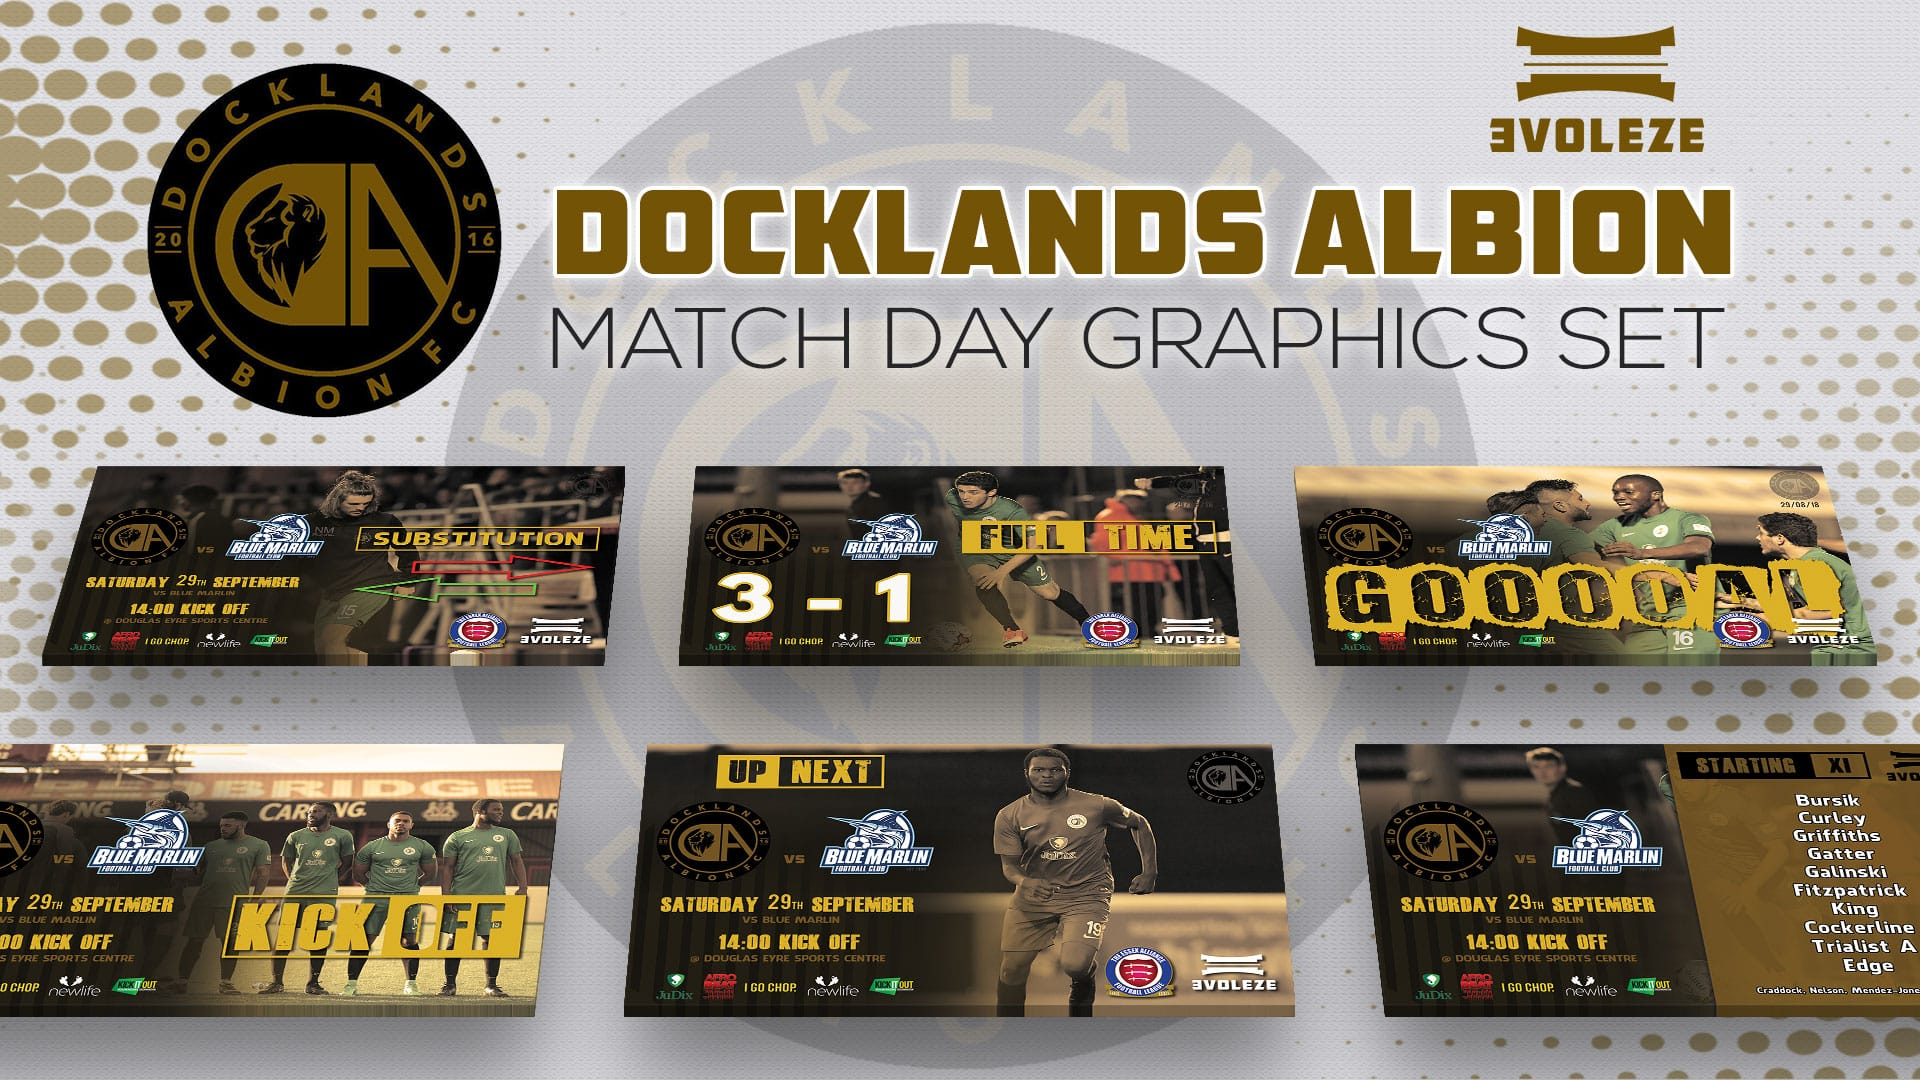 docklands albion match day graphics set